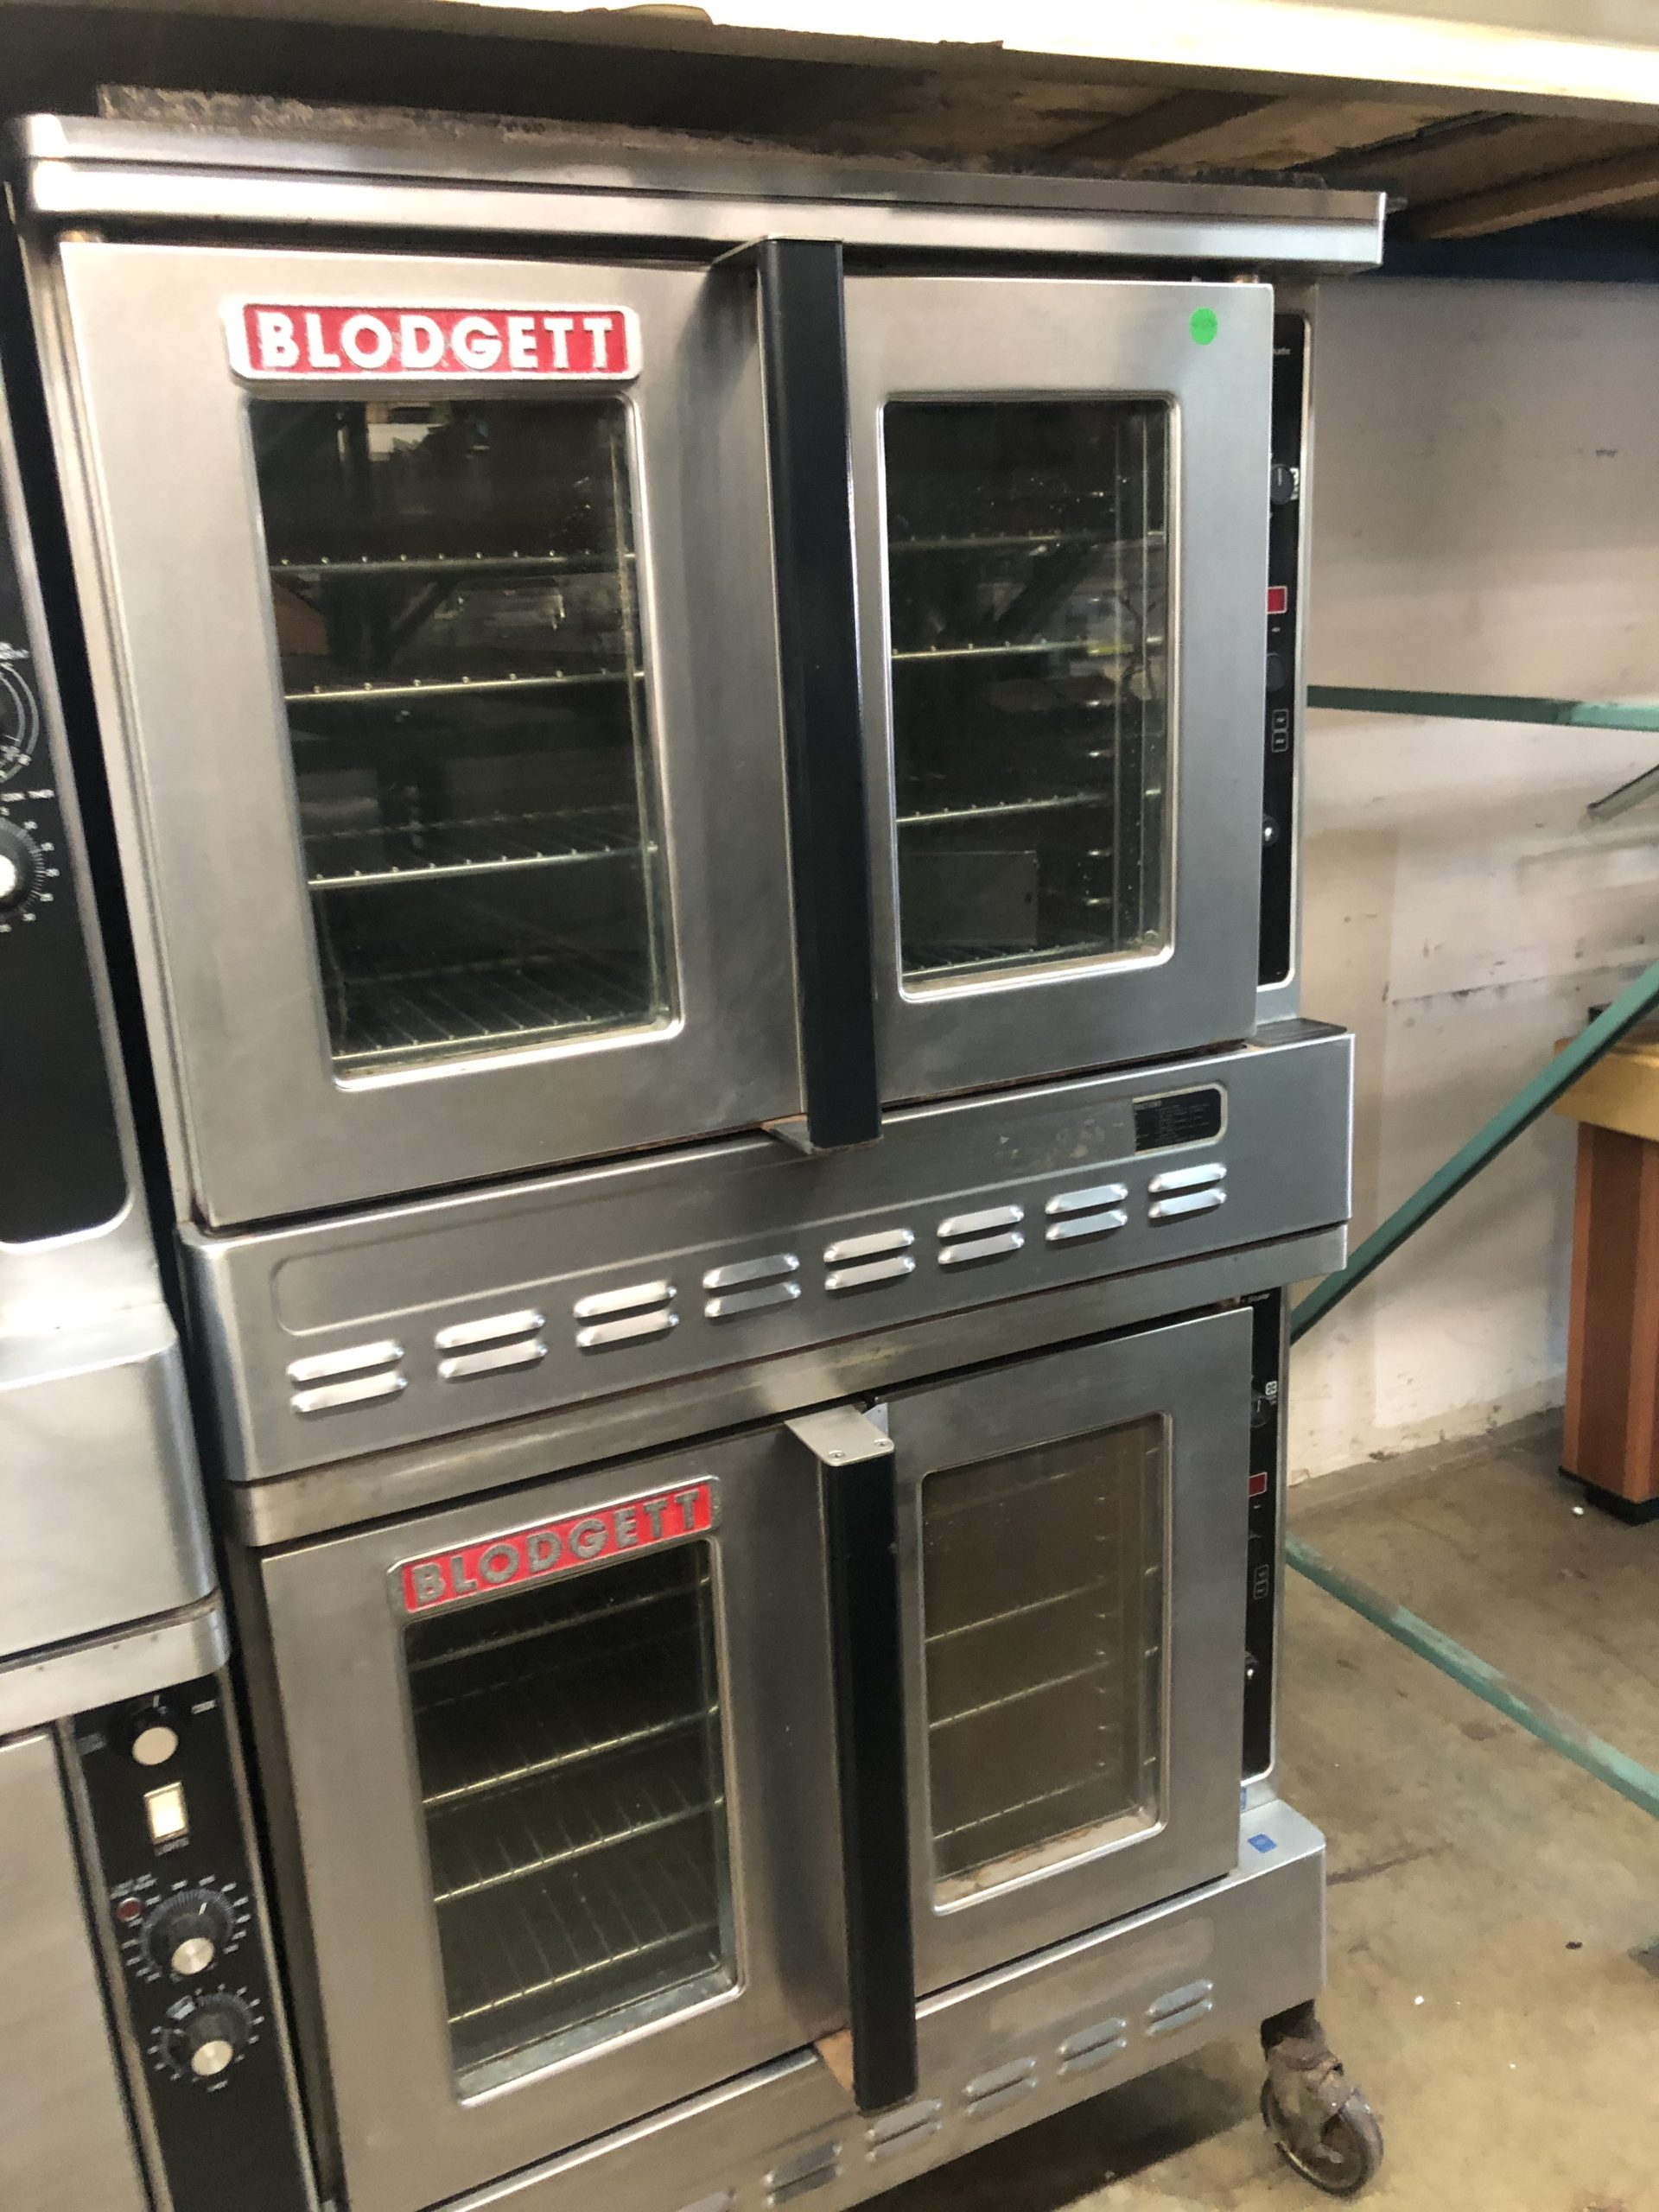 Blodgett Convection ovens Nat Gas Image